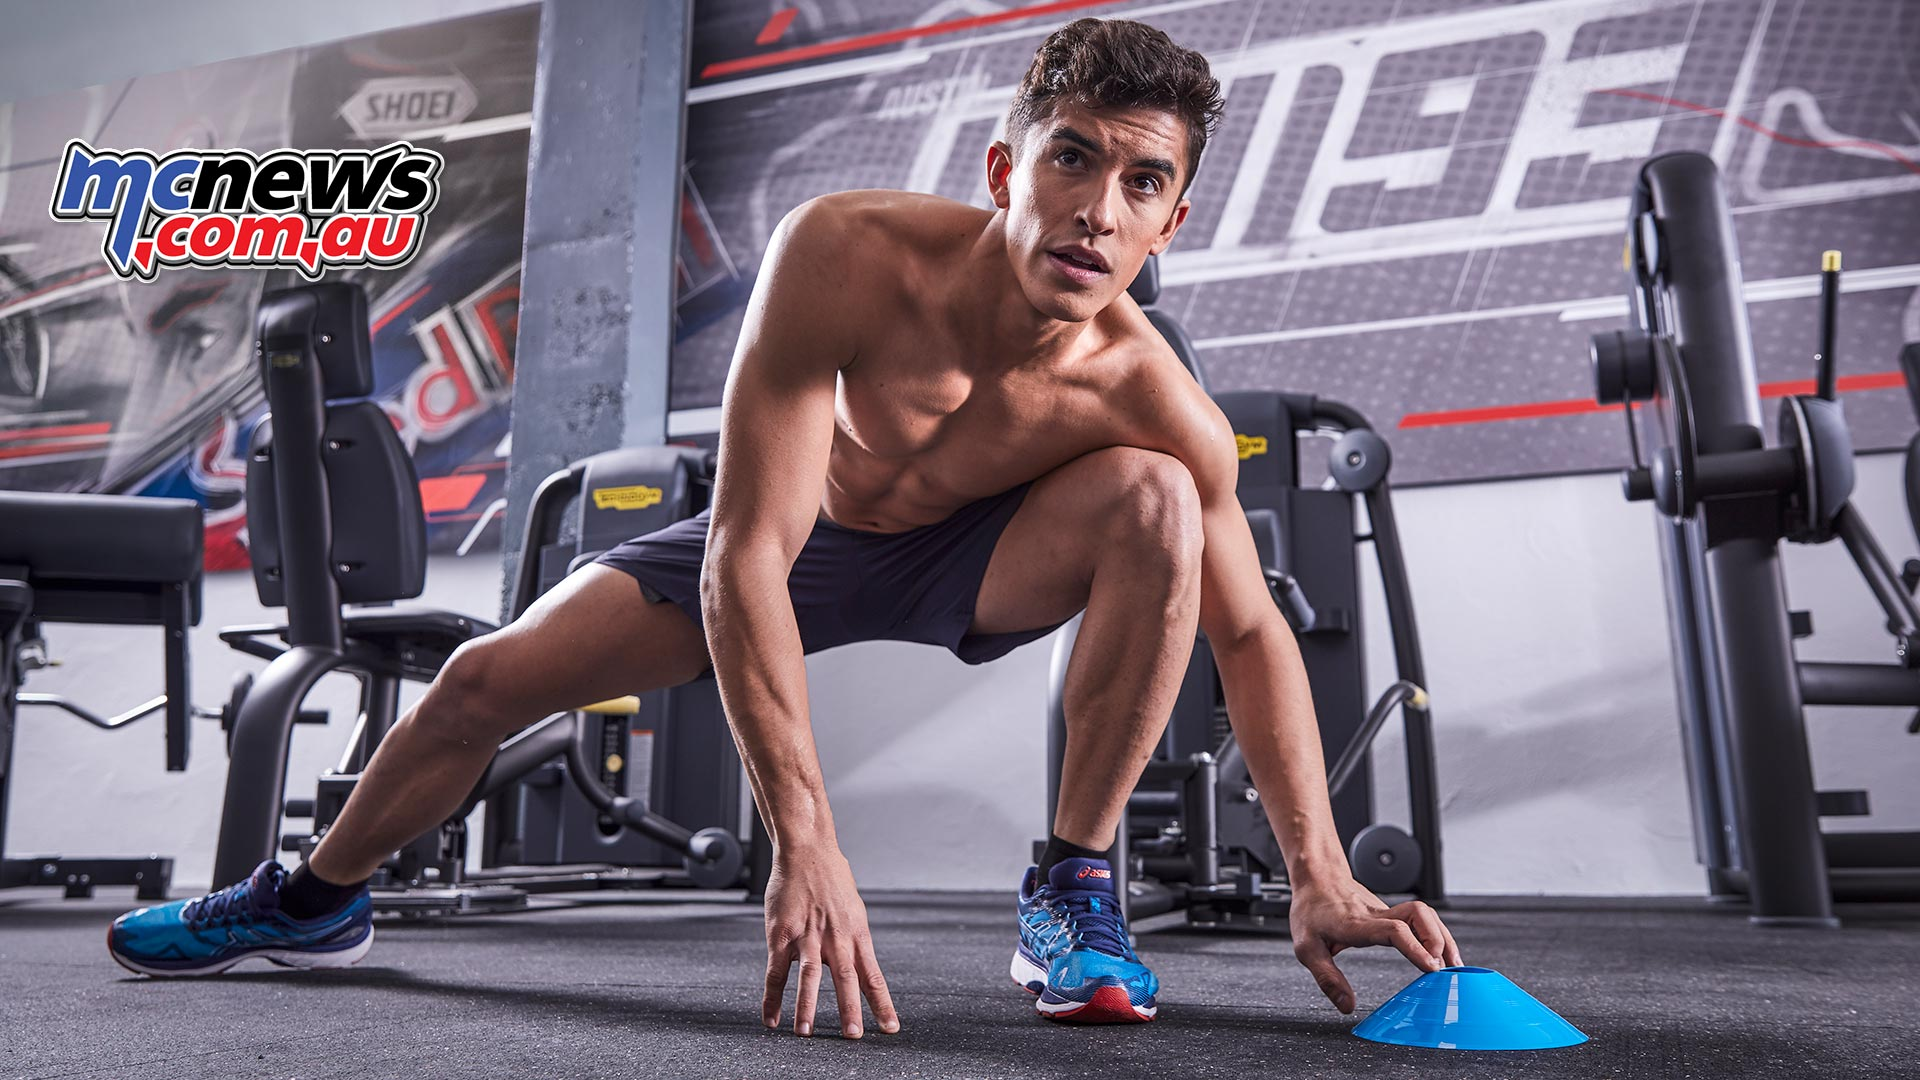 Marc Marquez on fitness training for MotoGP | MCNews.com.au